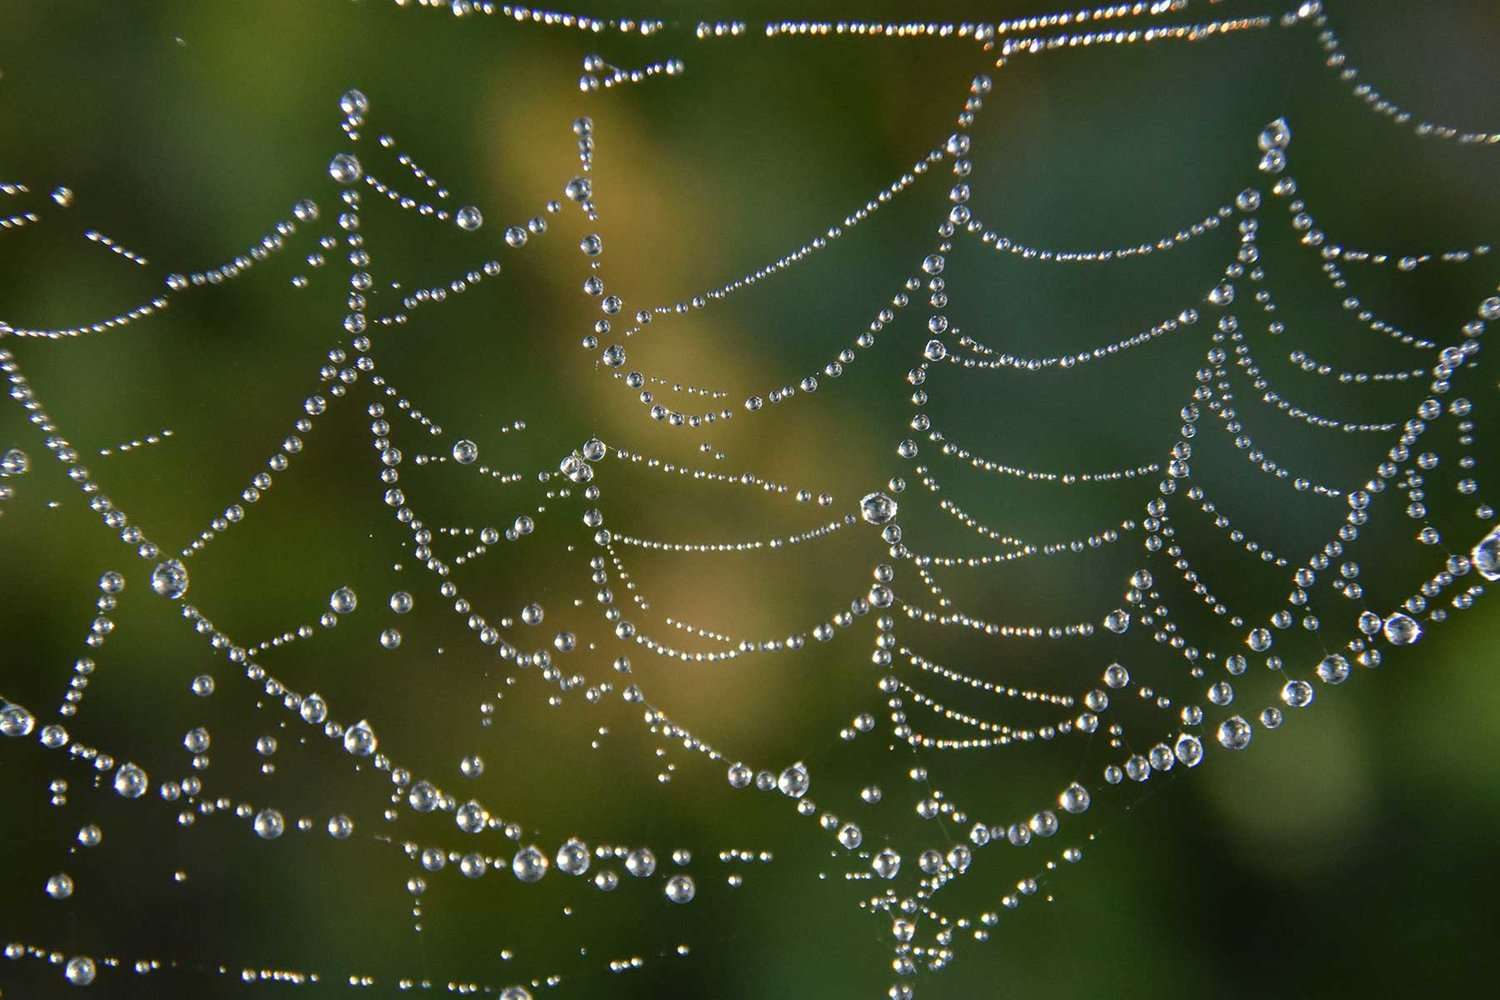 Dew collects on spider webs creating artful outlines of the web's delicate structure.